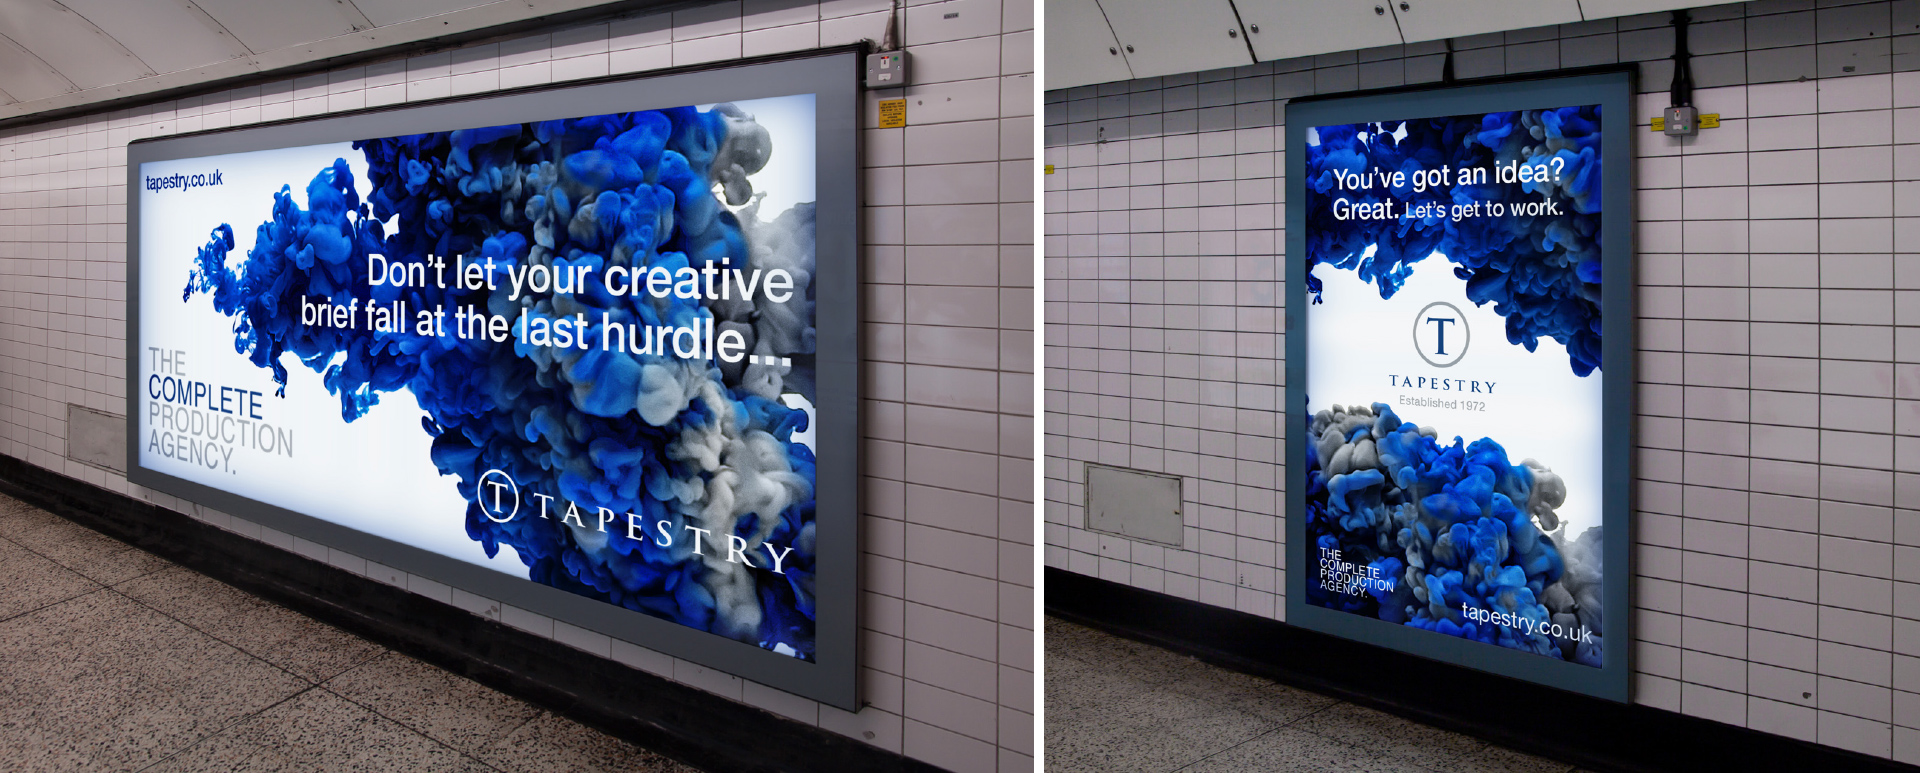 tapestry-artwork-ooh-billboard-agency